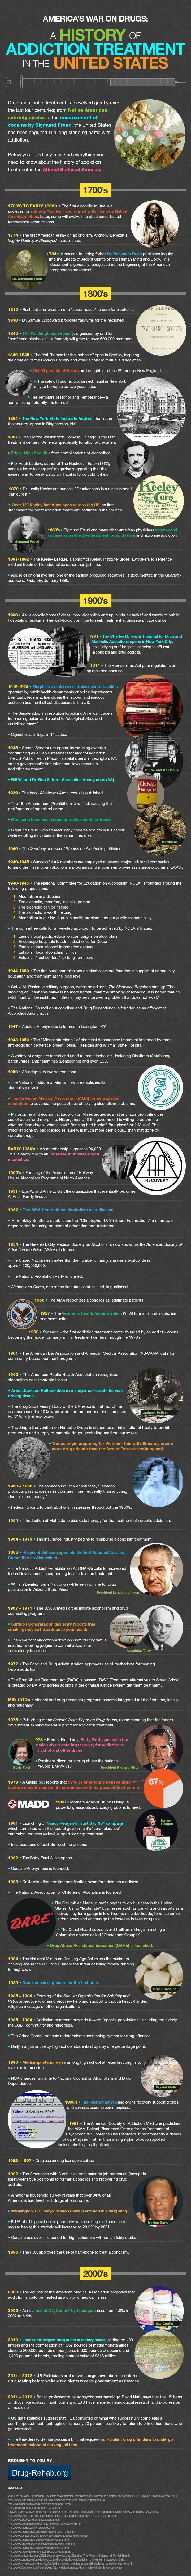 A History Of Addiction Treatment In The United States [INFOGRAPHIC] #addiction #treatment